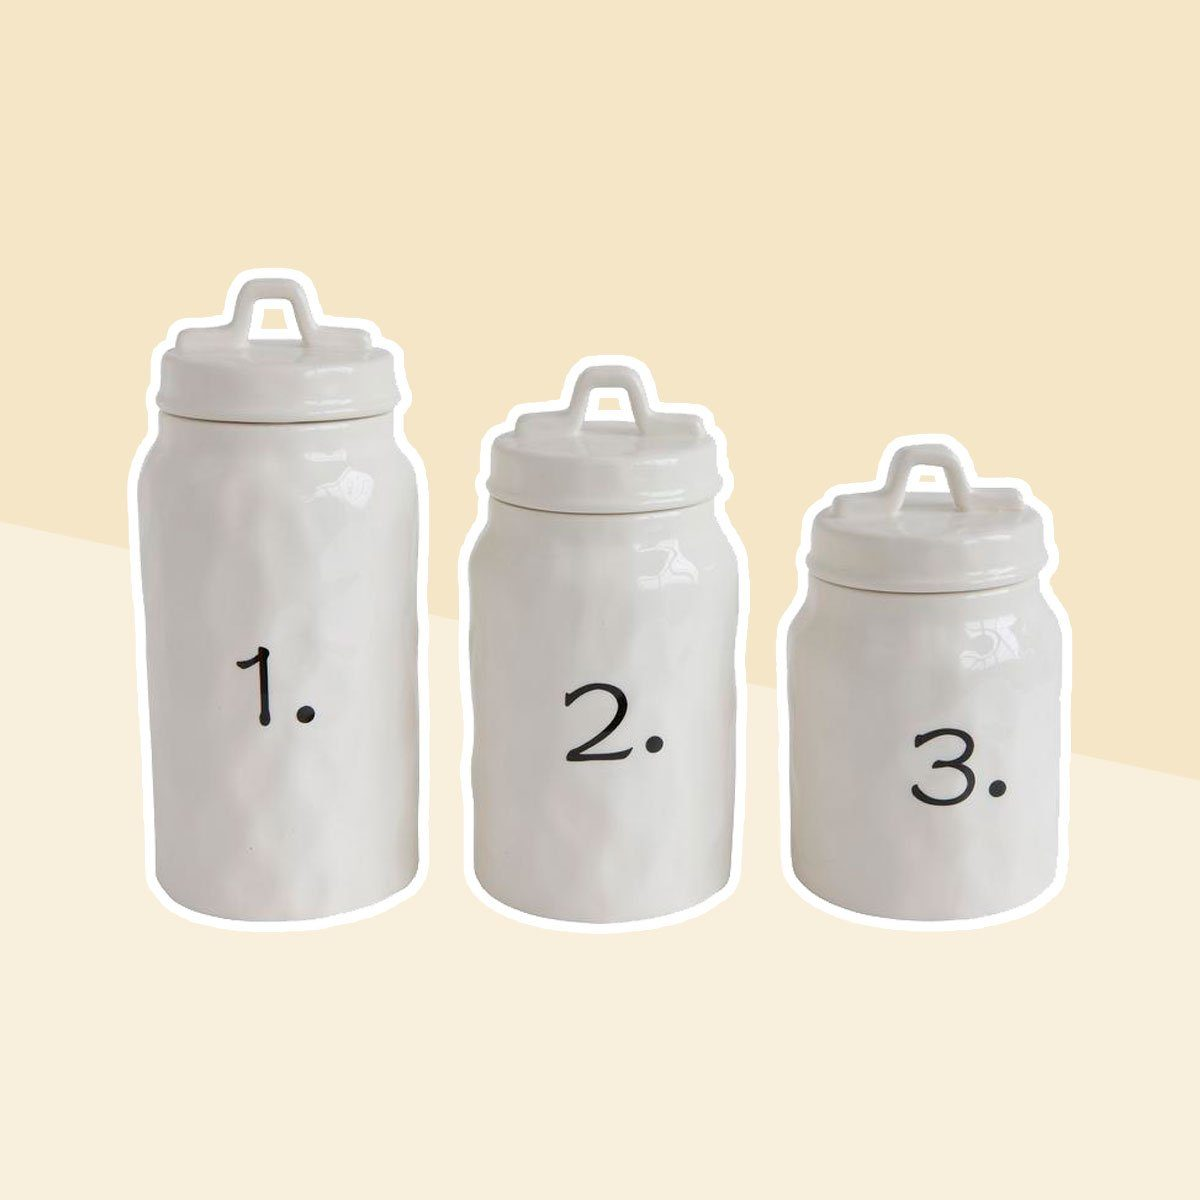 Ceramic Food Canisters